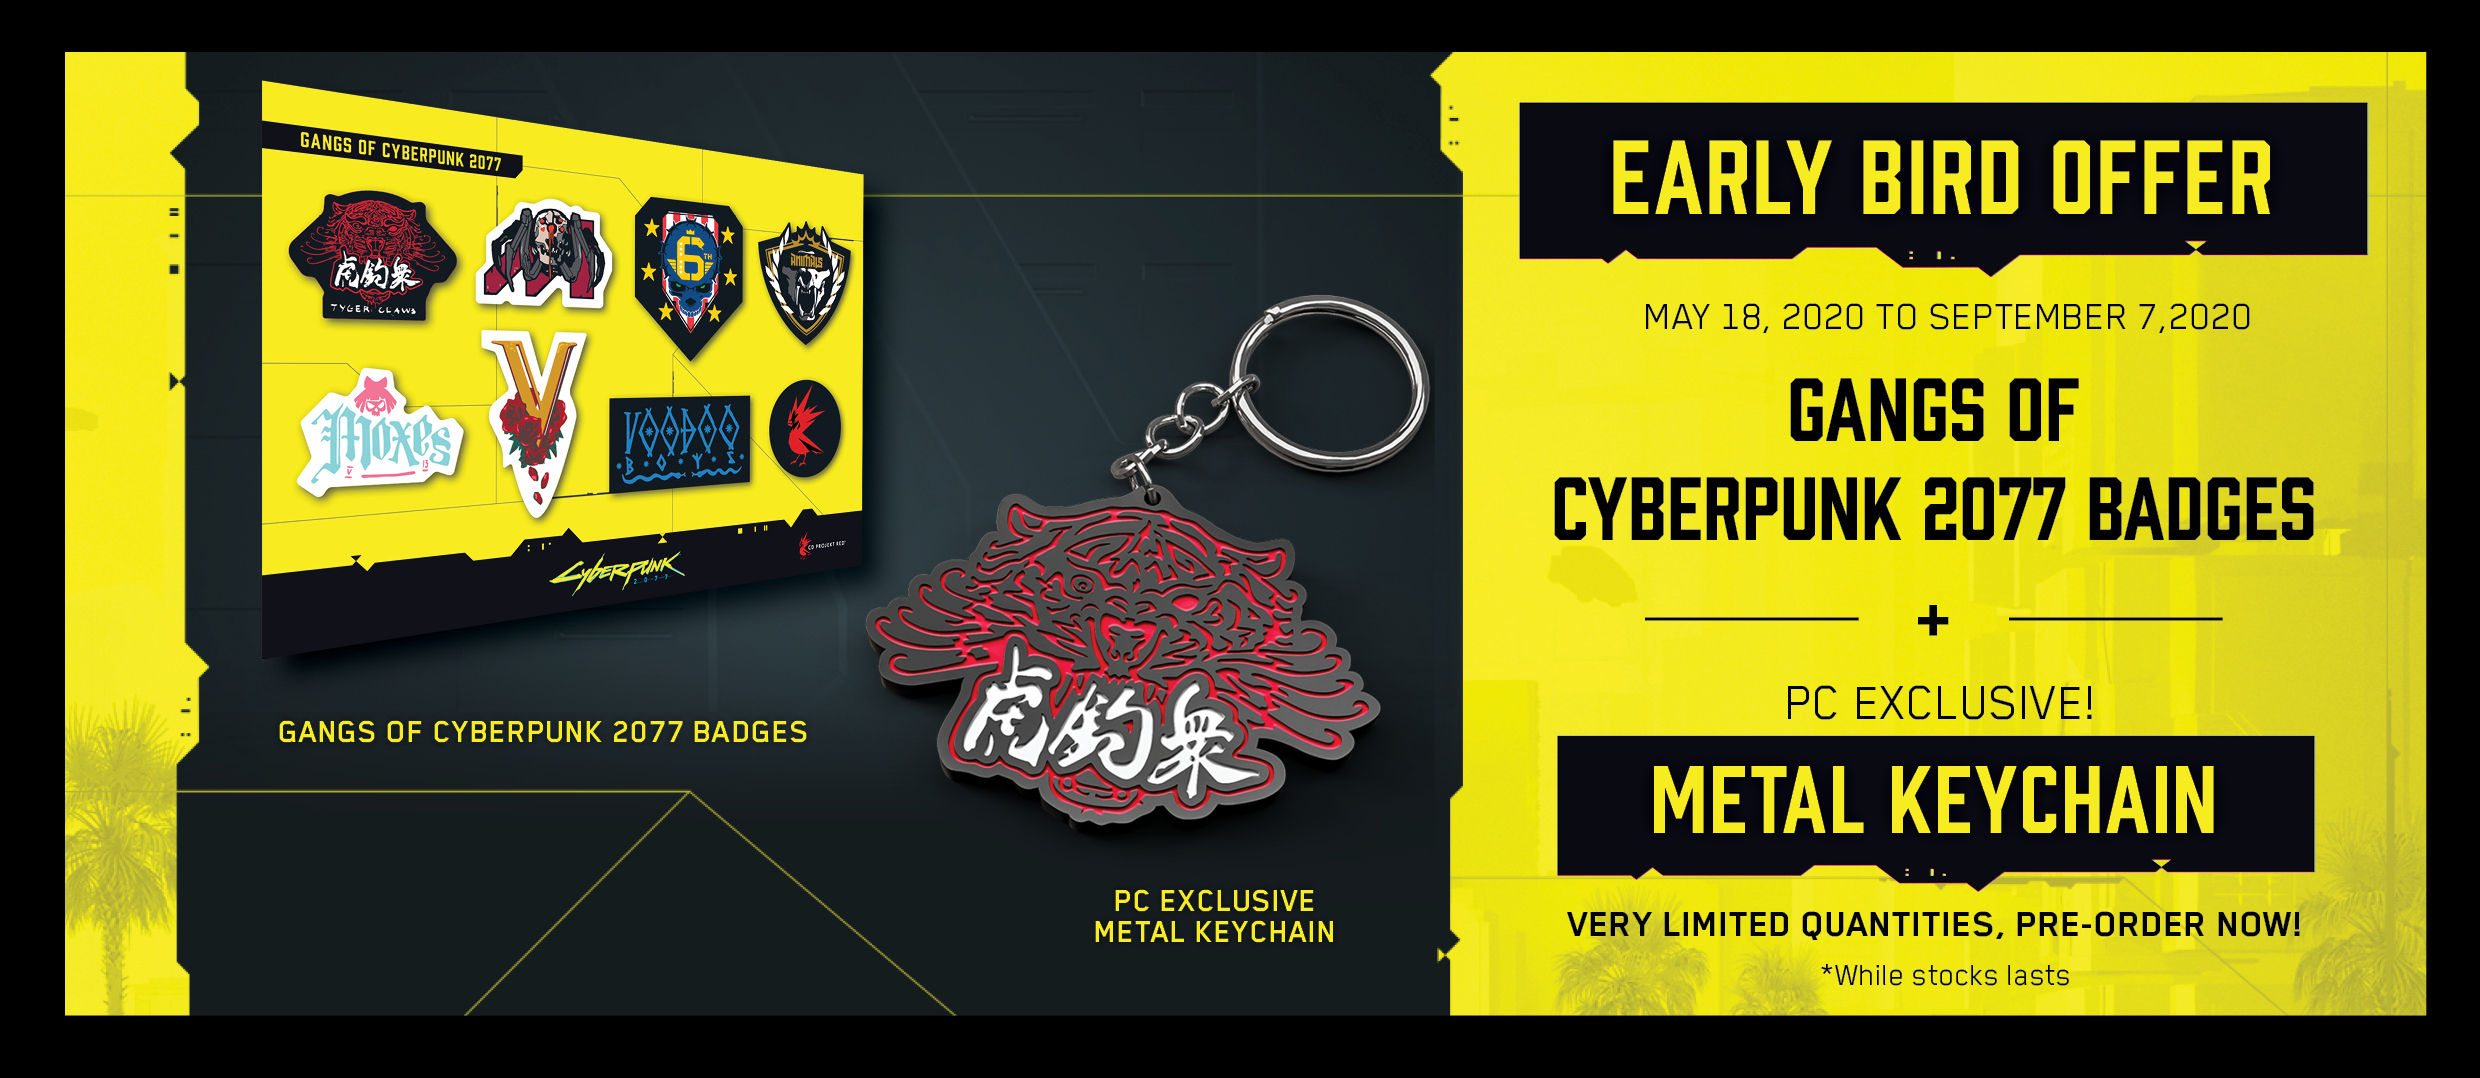 Epicsoft Asia Promotion Cyberpunk 2077 Standard PC Early Bird Offer